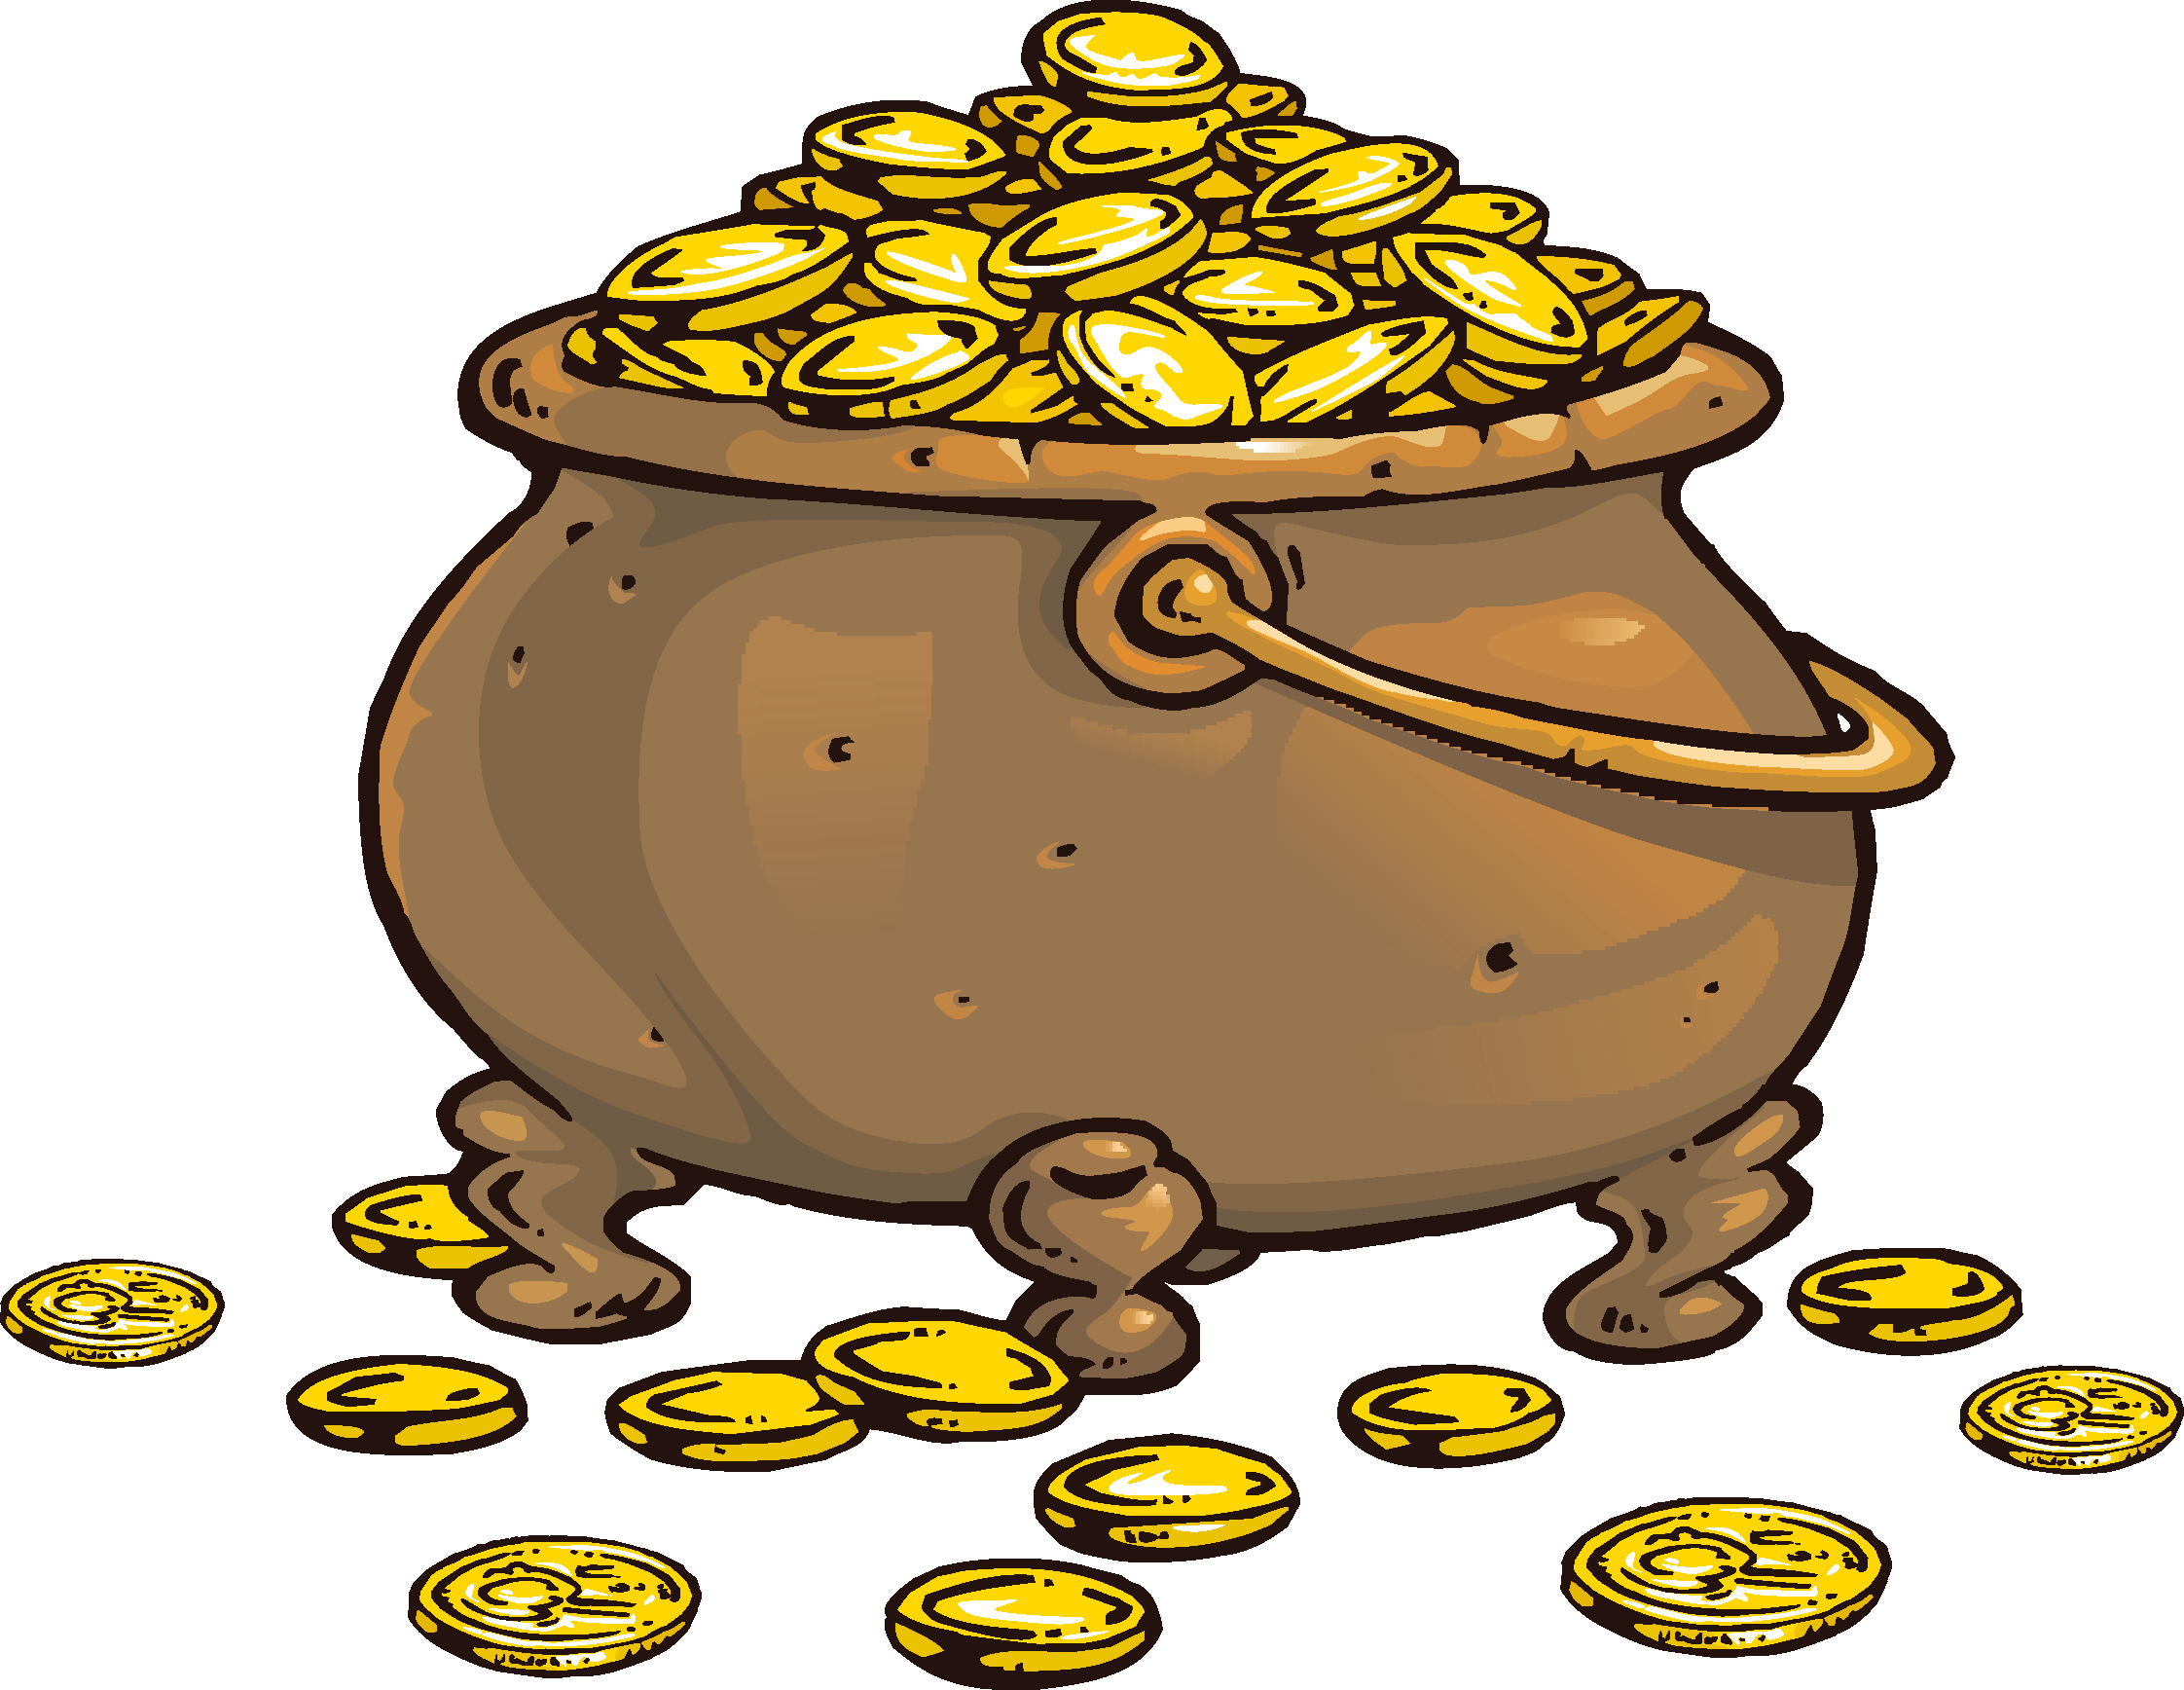 Piracy clip art transprent. Treasure clipart bag gold coin